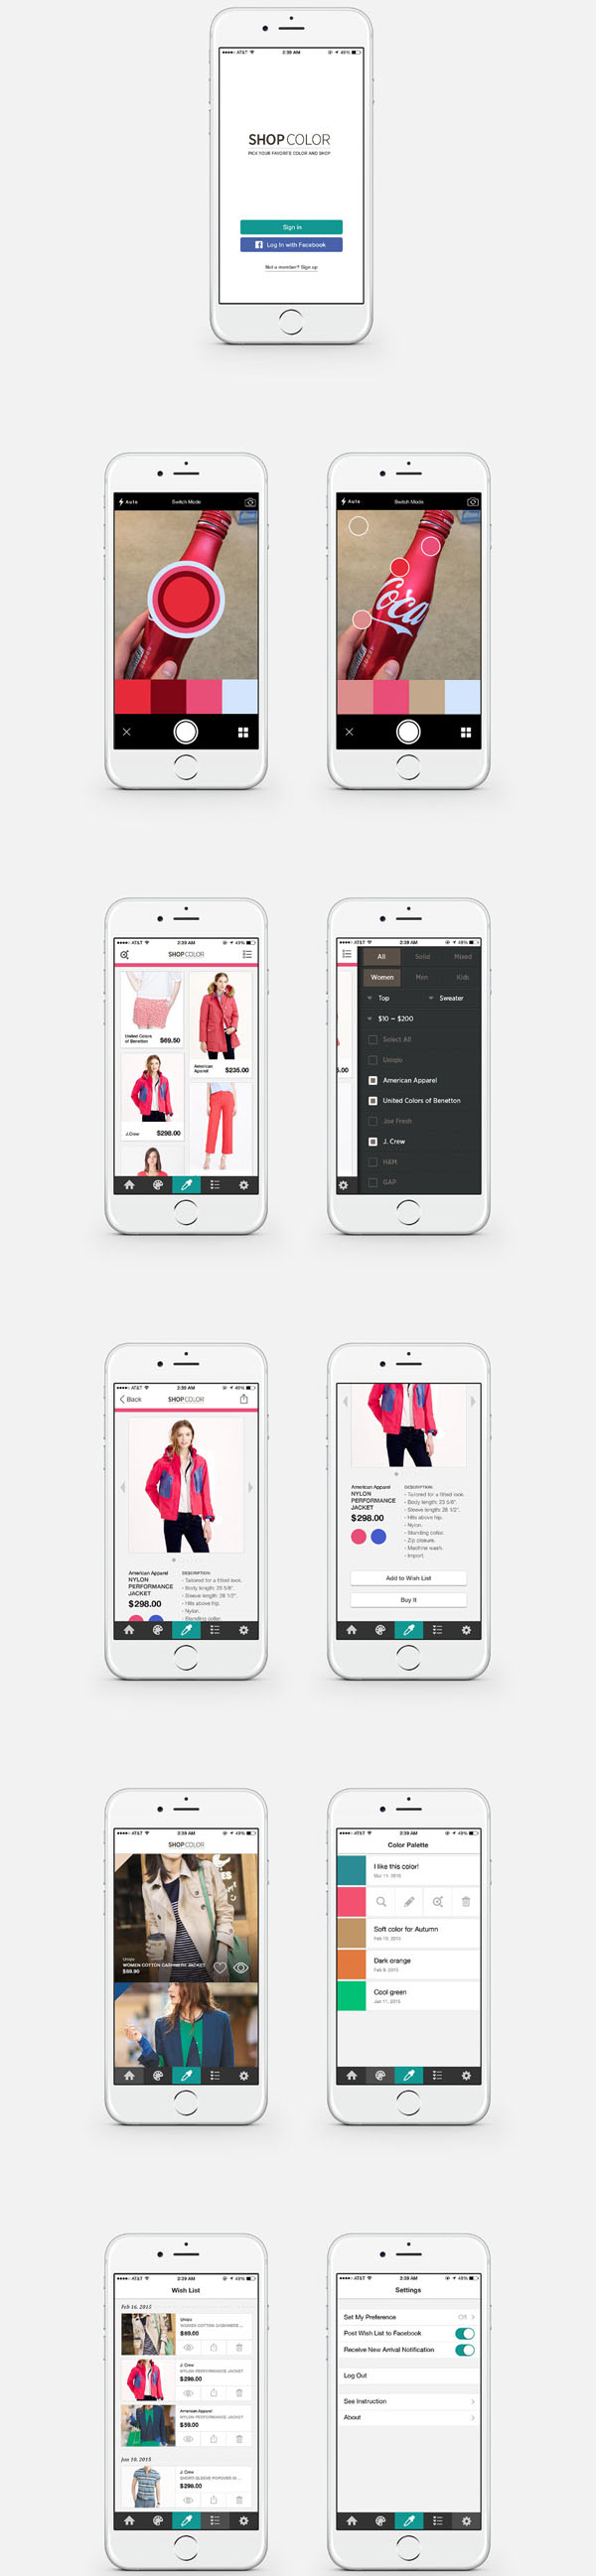 Shop-Color-App-Design